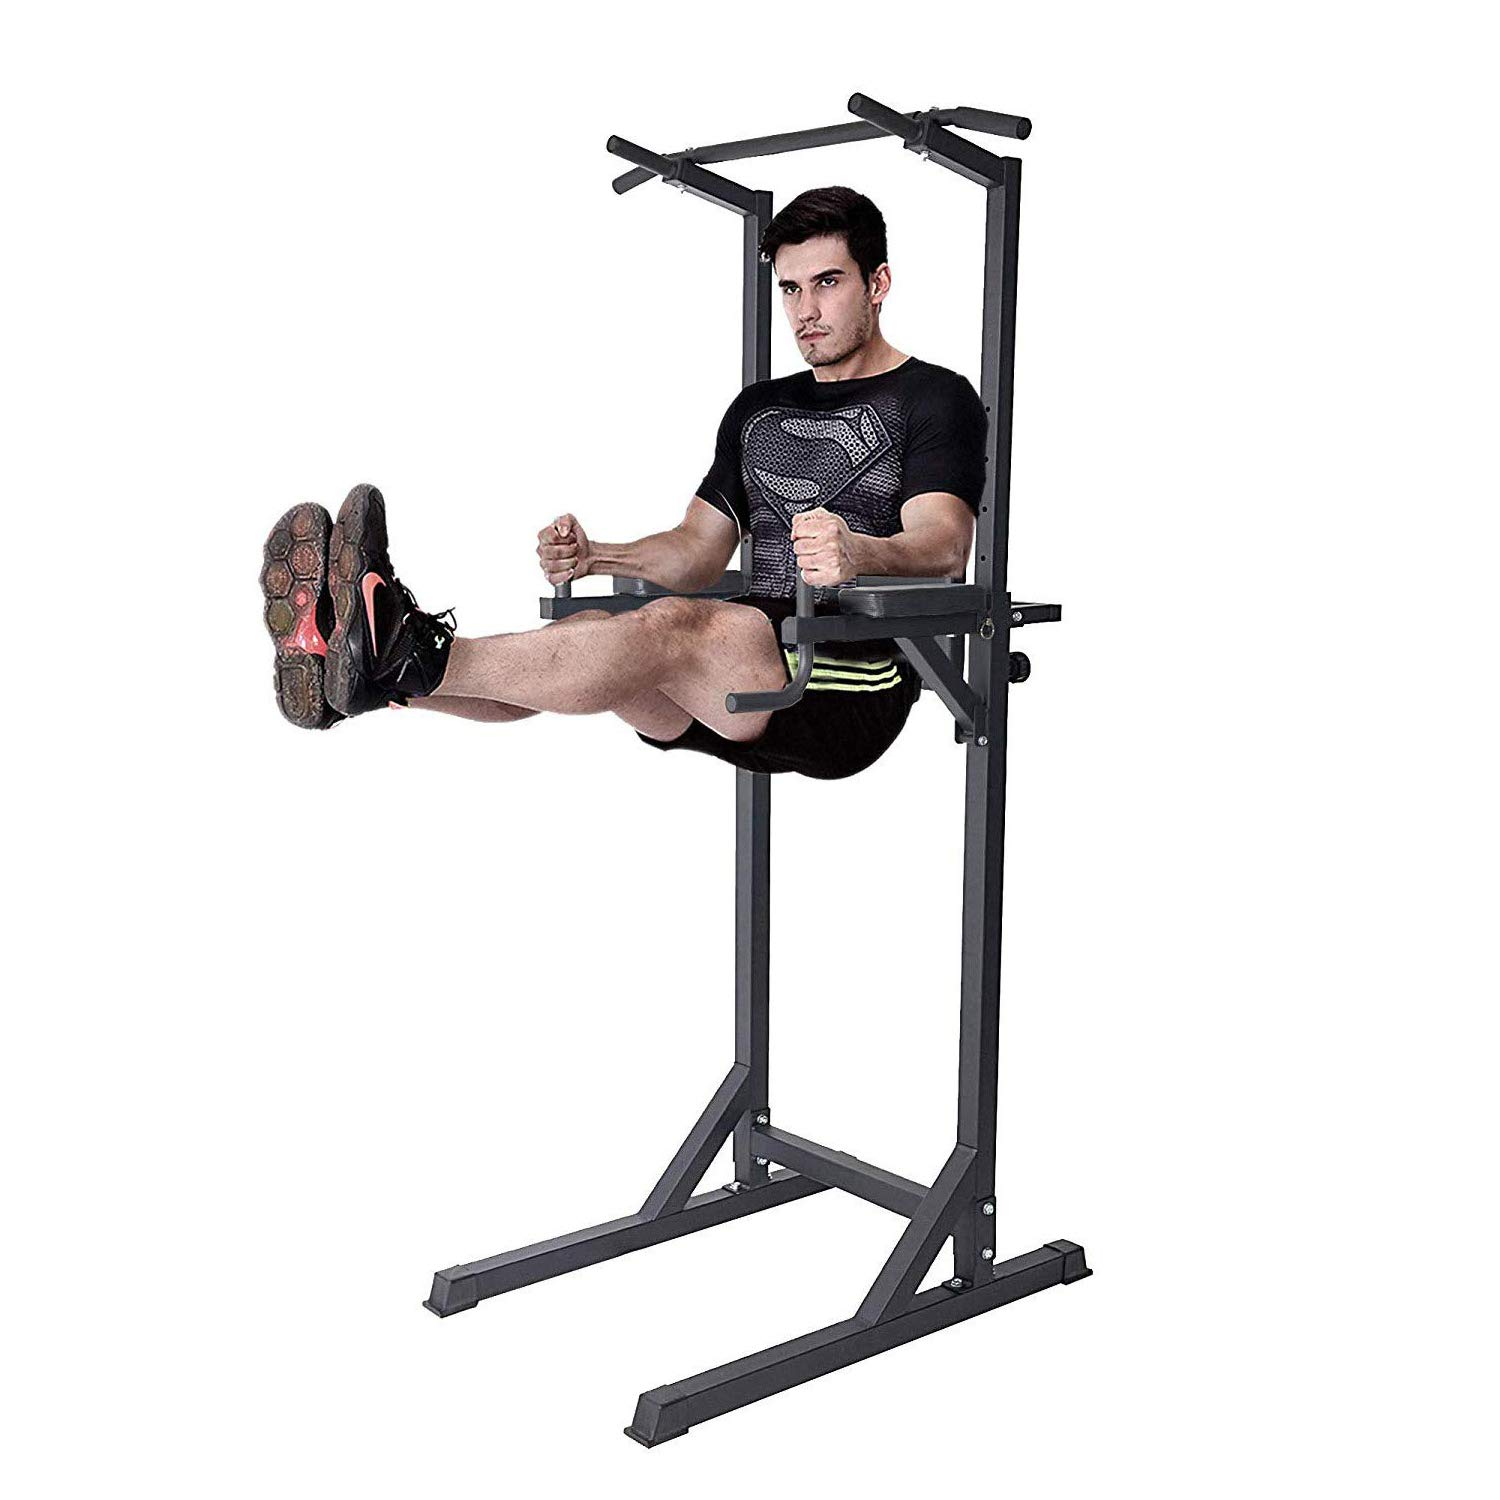 Dporticus Power Tower Workout Dip Station Multi-Function Home Gym Strength Training Fitness Equipment